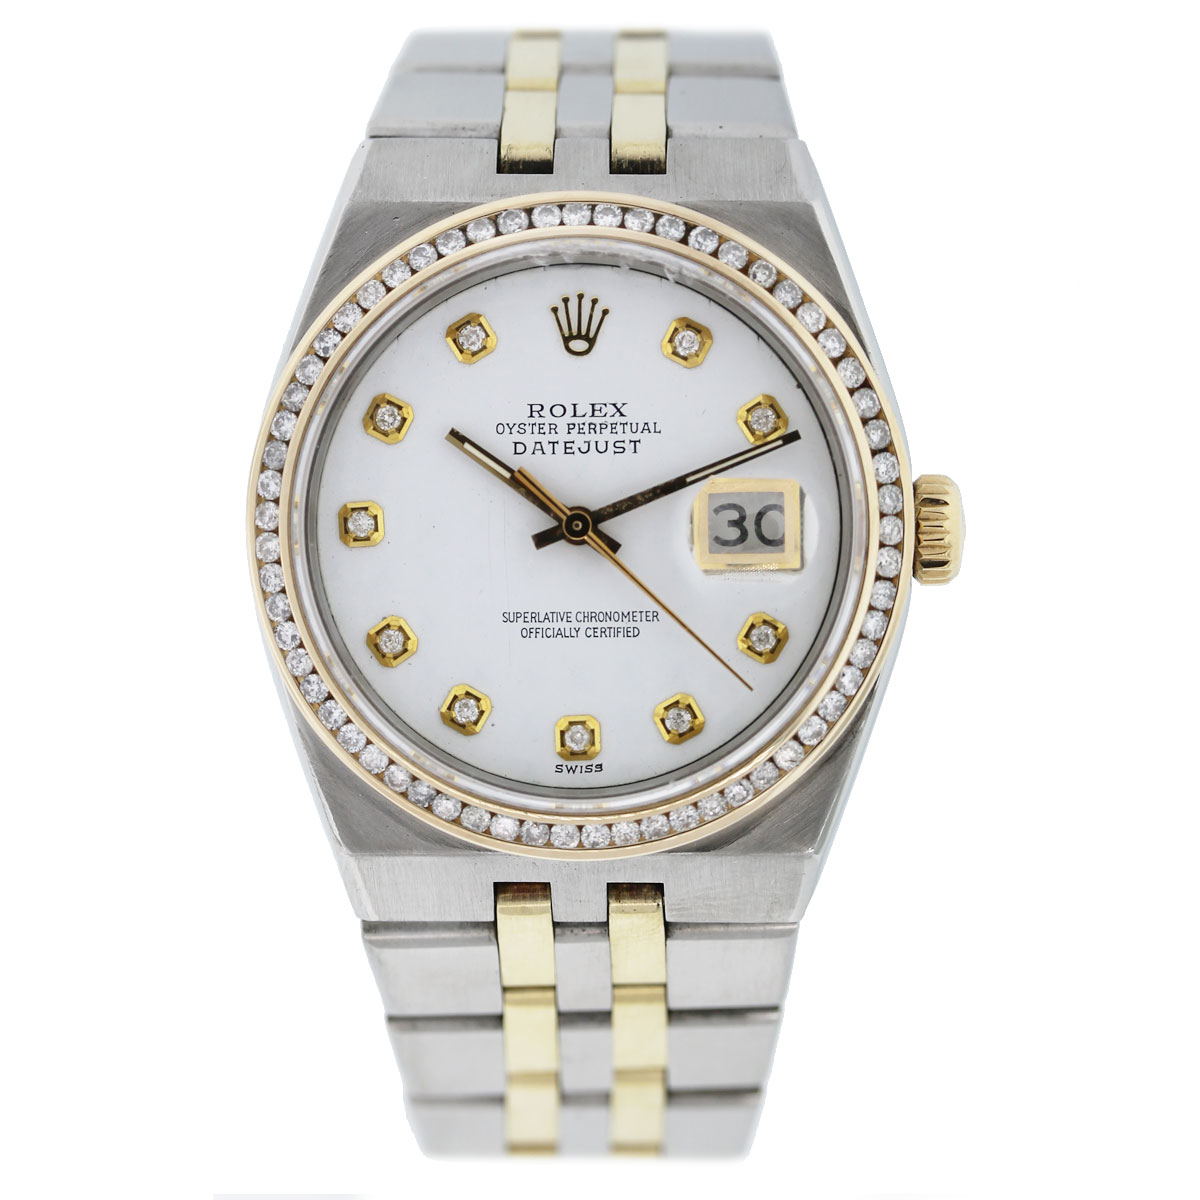 Rolex DateJust 17013 Two Tone White Pyramid Diamond Dial/Bezel Watch full